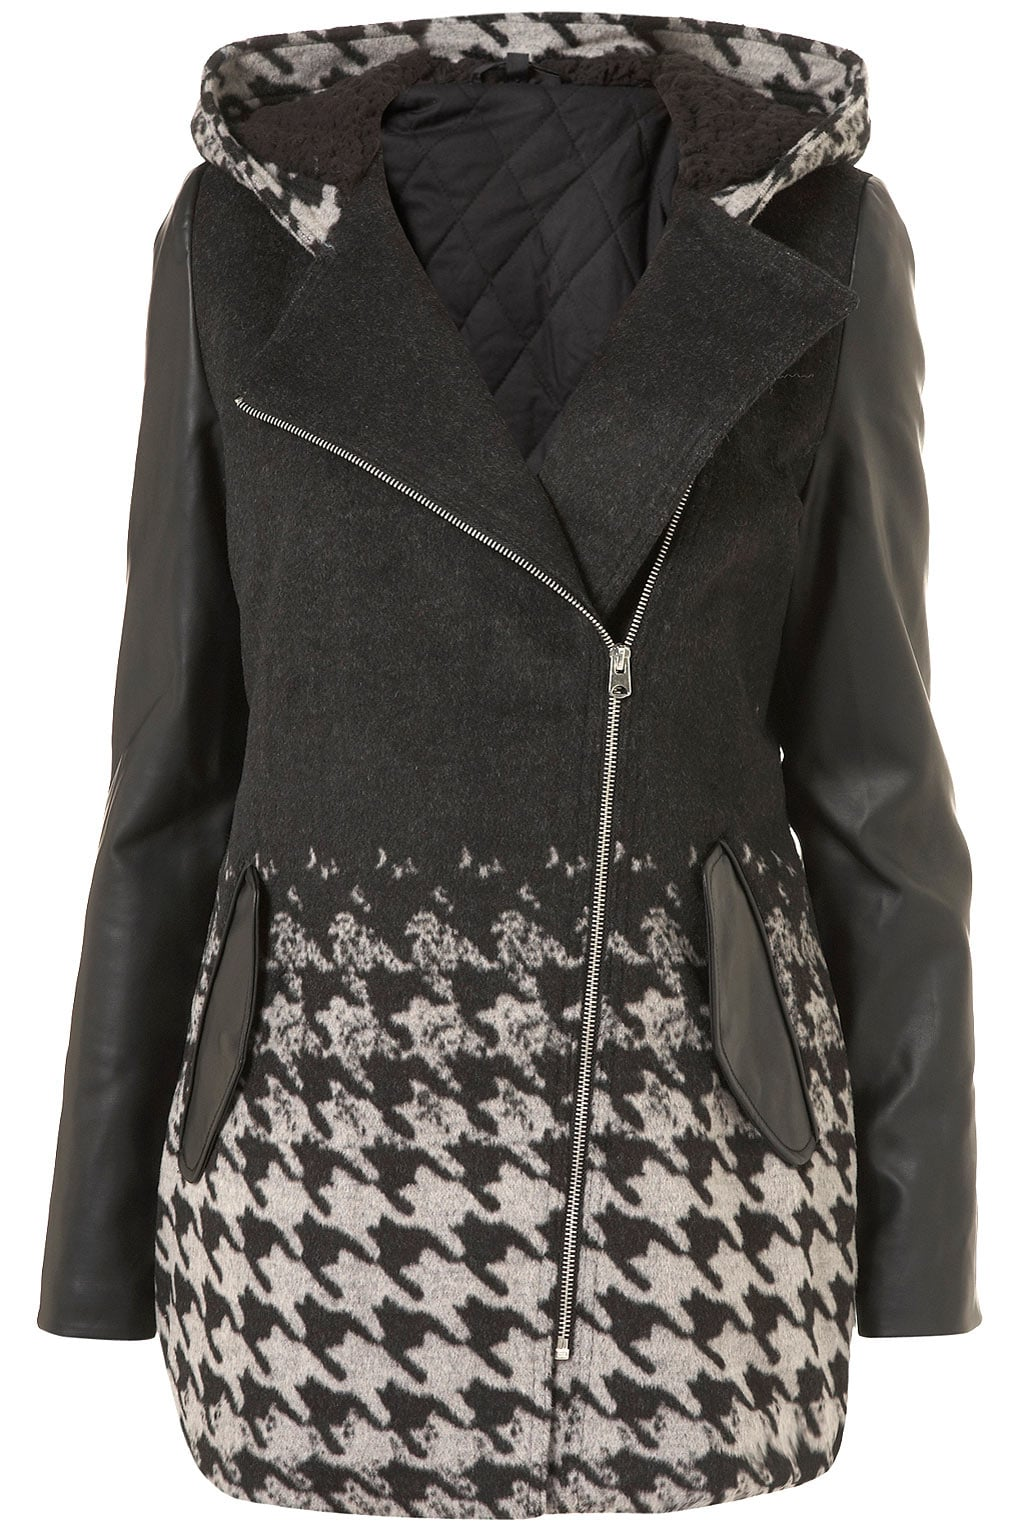 We love the unique use of print and colorblocking on Topshop's Dogtooth Duffle Coat ($170).